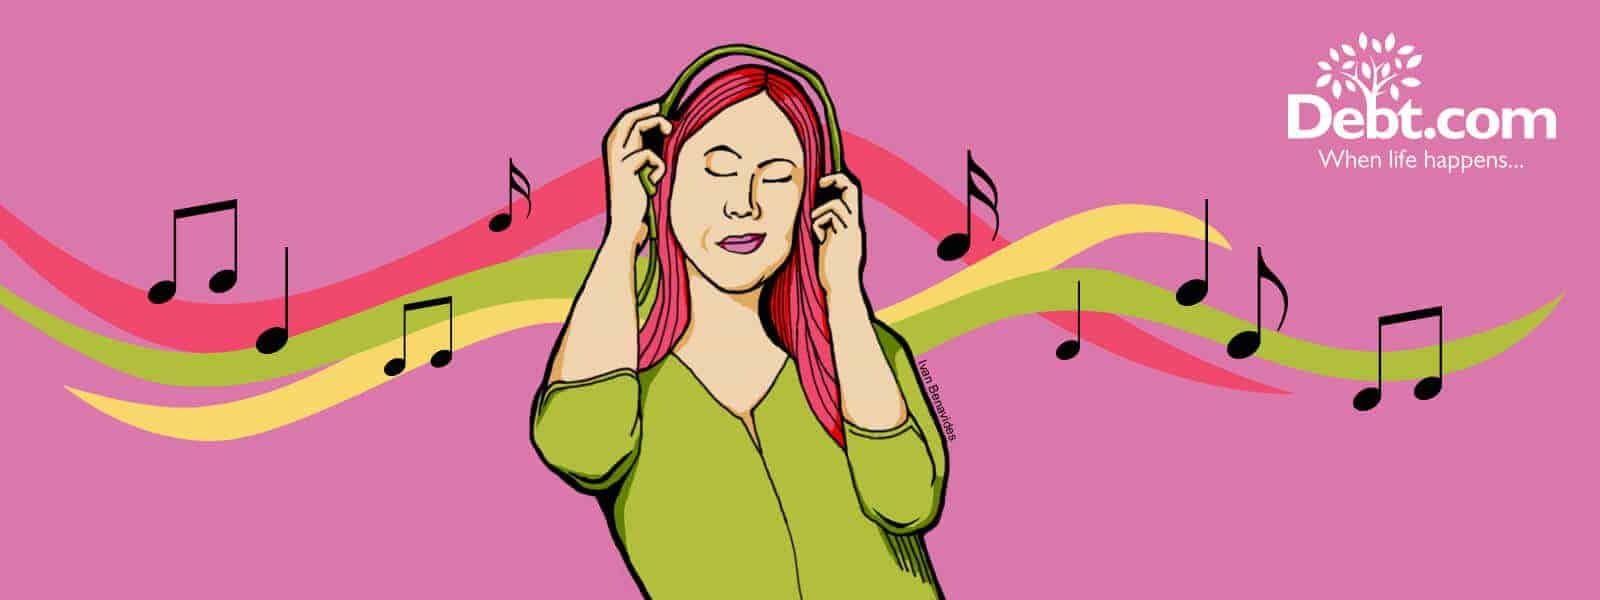 Debt.com Illustration by Ivan Benavides: Millennial woman listening to music on a paid music steaming service